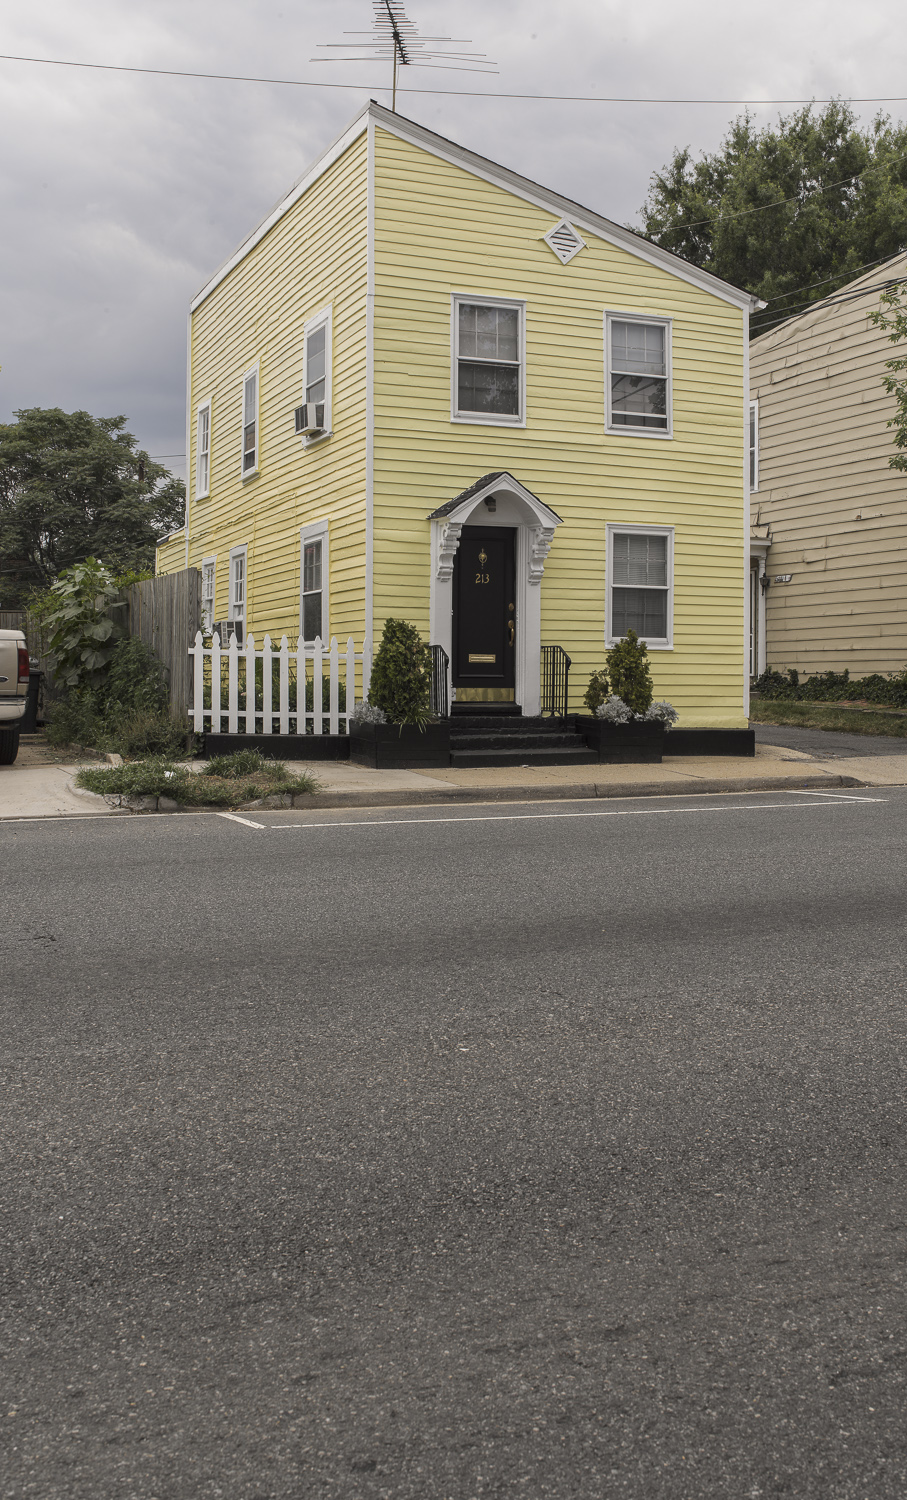 Yellow house - Alexandria, Virginia, 2011